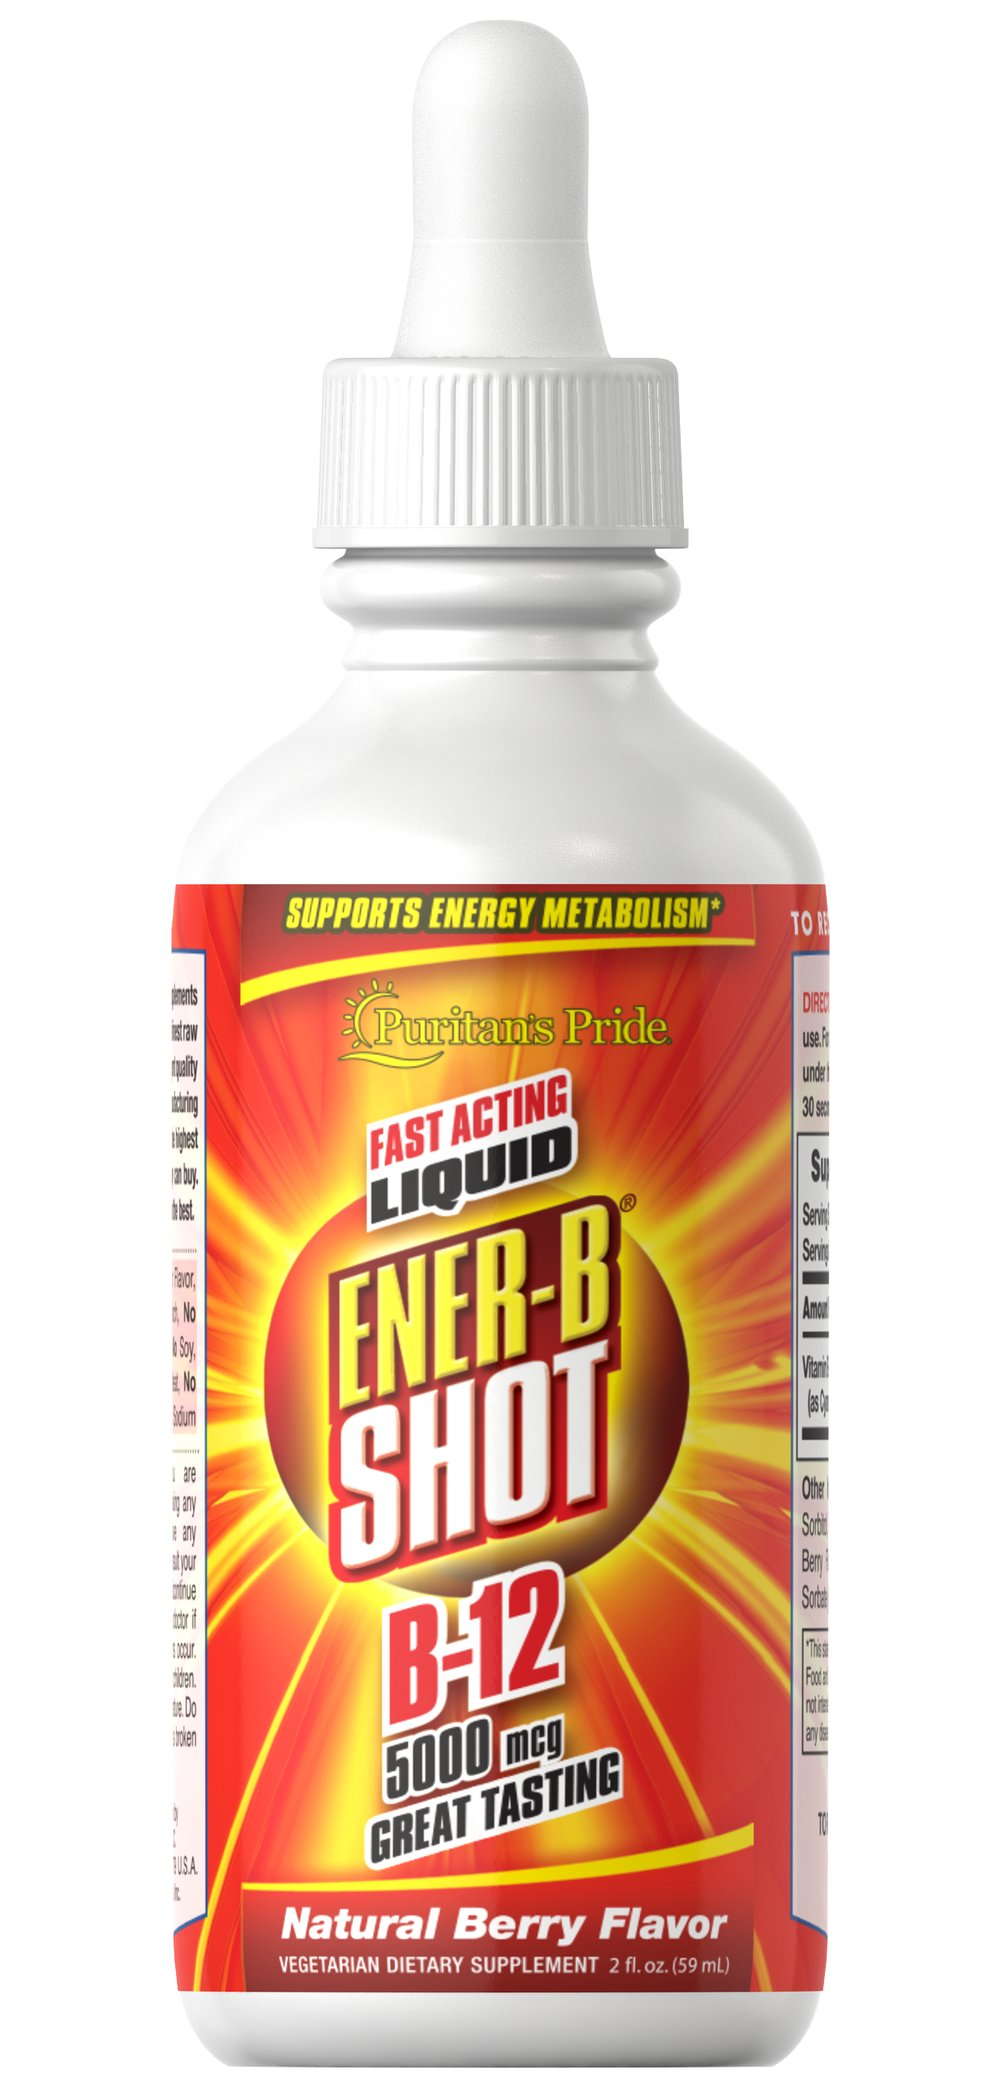 B-12 5000 mcg <p>Plays a role in promoting energy metabolism in the body**</p><p>Helps assure proper metabolic functioning**</p><p>Great-tasting, natural berry flavor</p><p>A whopping 59 servings per 2 oz. bottle!</p><p>If work is wearing you down…or your kids are tiring you out…or you're simply just missing the energy you used to have, try our fast acting, great-tasting Ener-B® Shot, and get the extra energy boost you need!**</p>